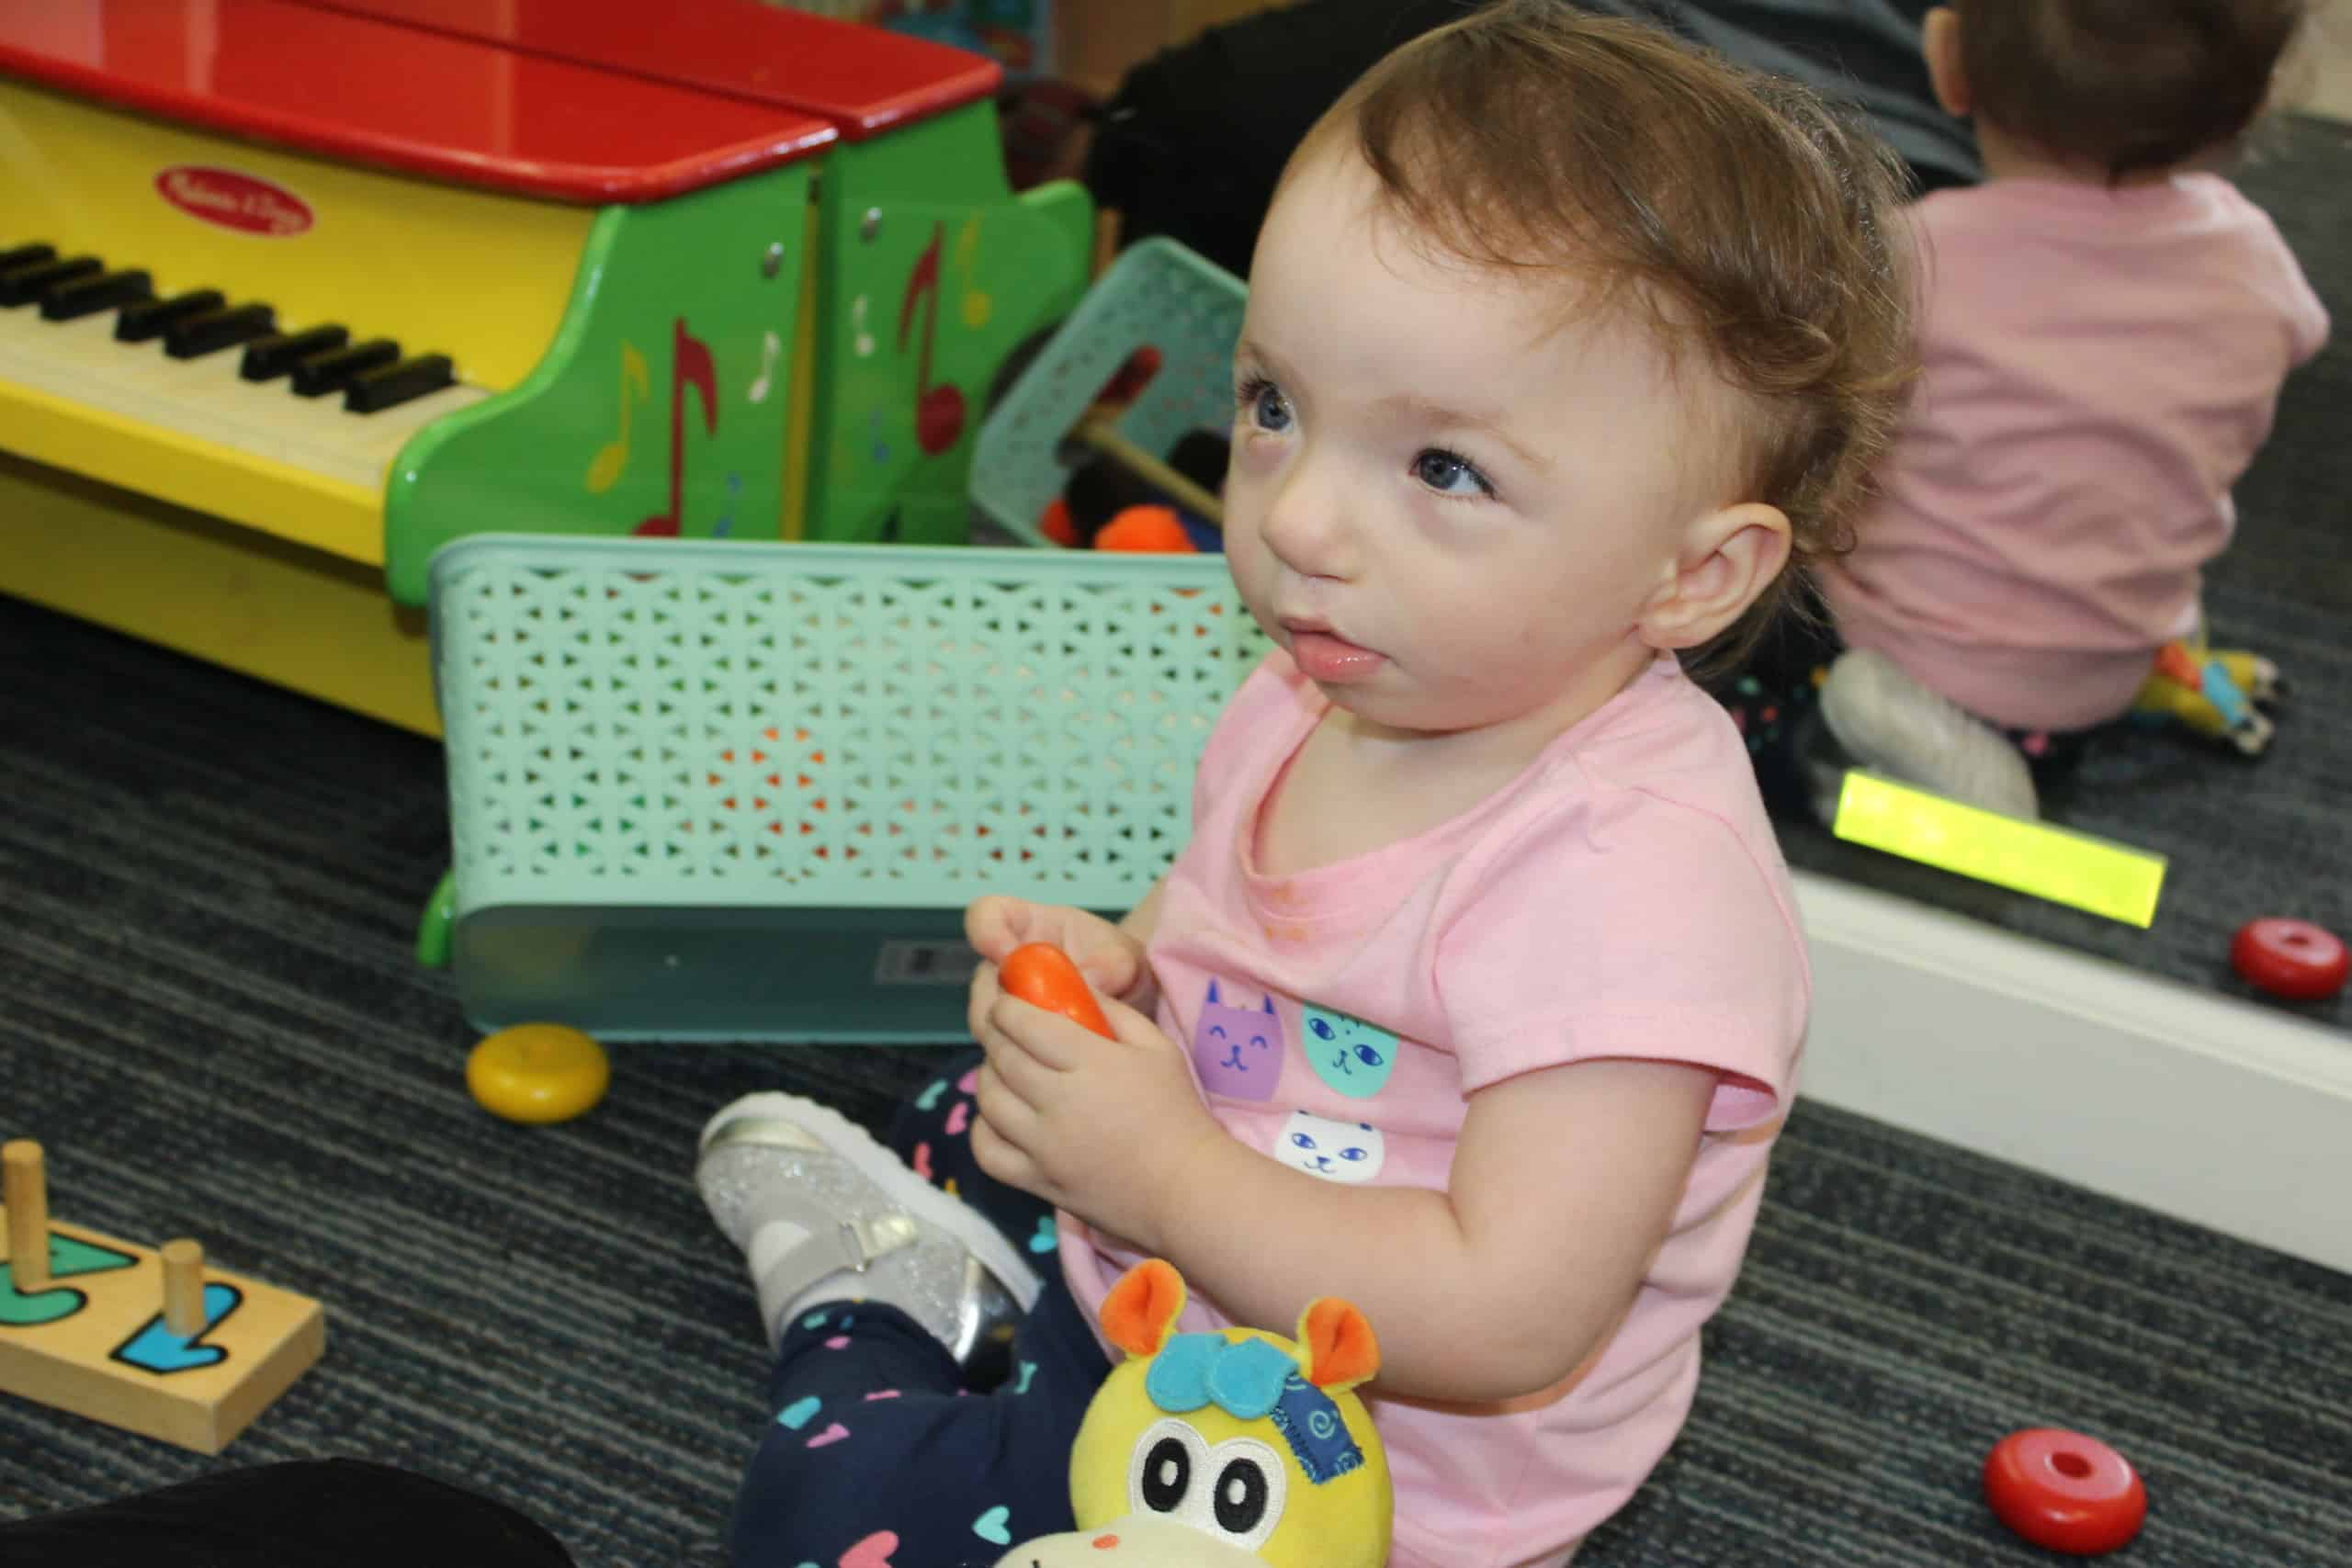 An infant girl sits on the classroom floor playing with a bright orange toy